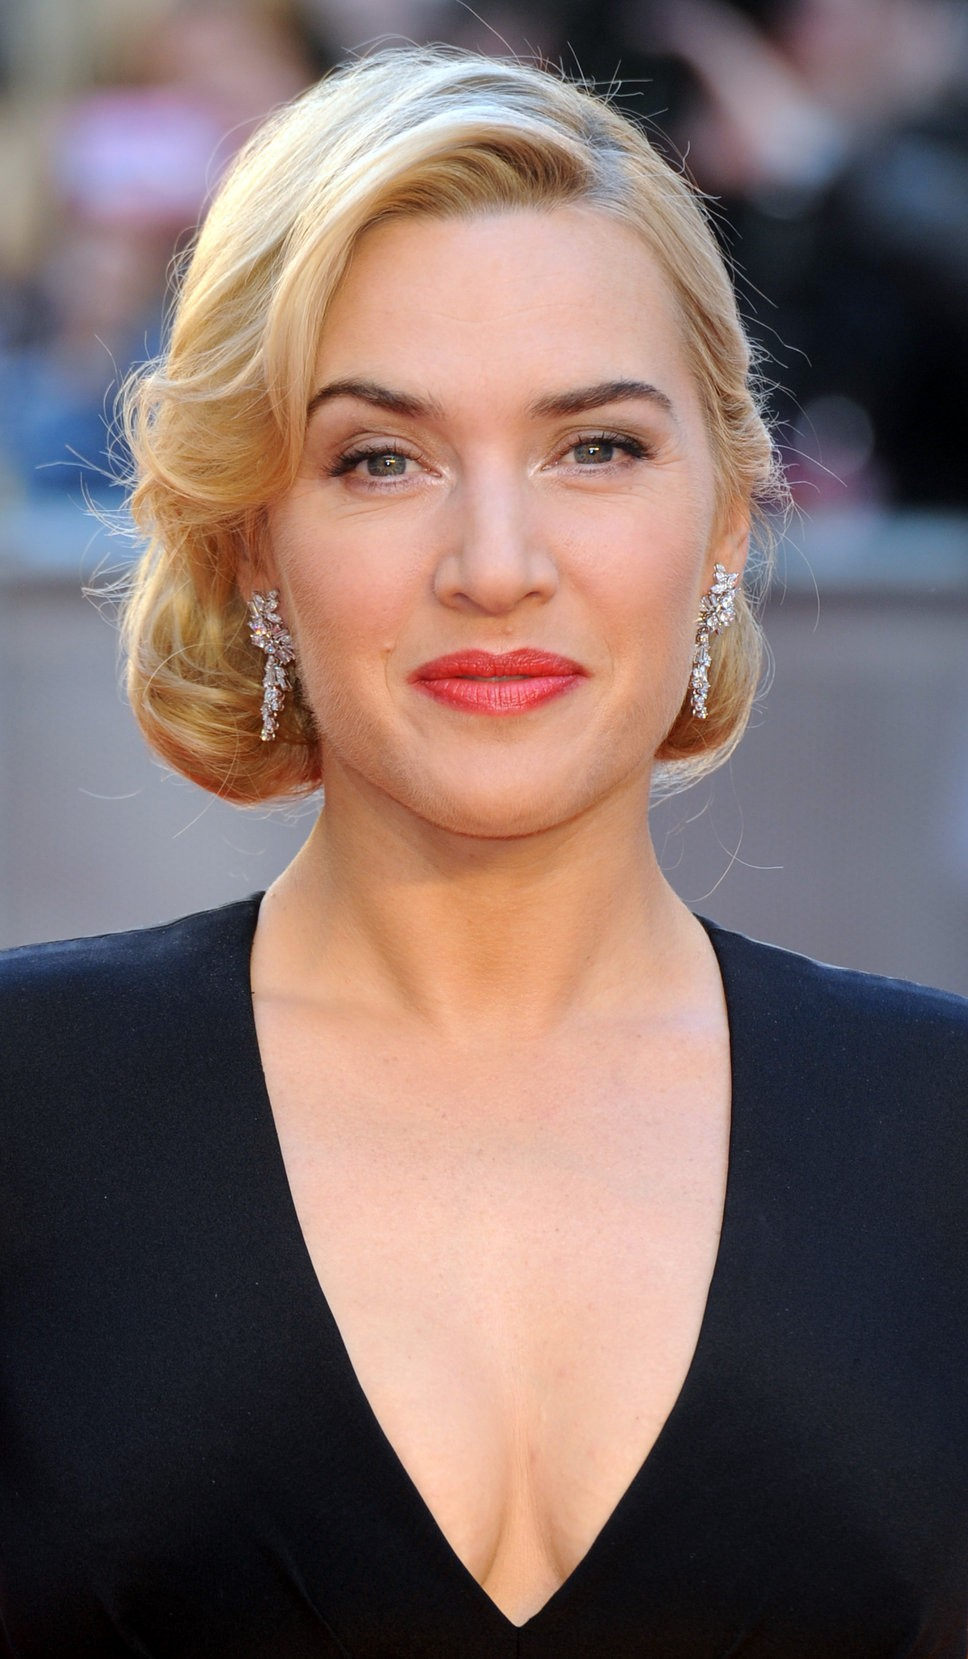 Kate Winslet Fears Miley Cyrus Has 'Lost Her Way'